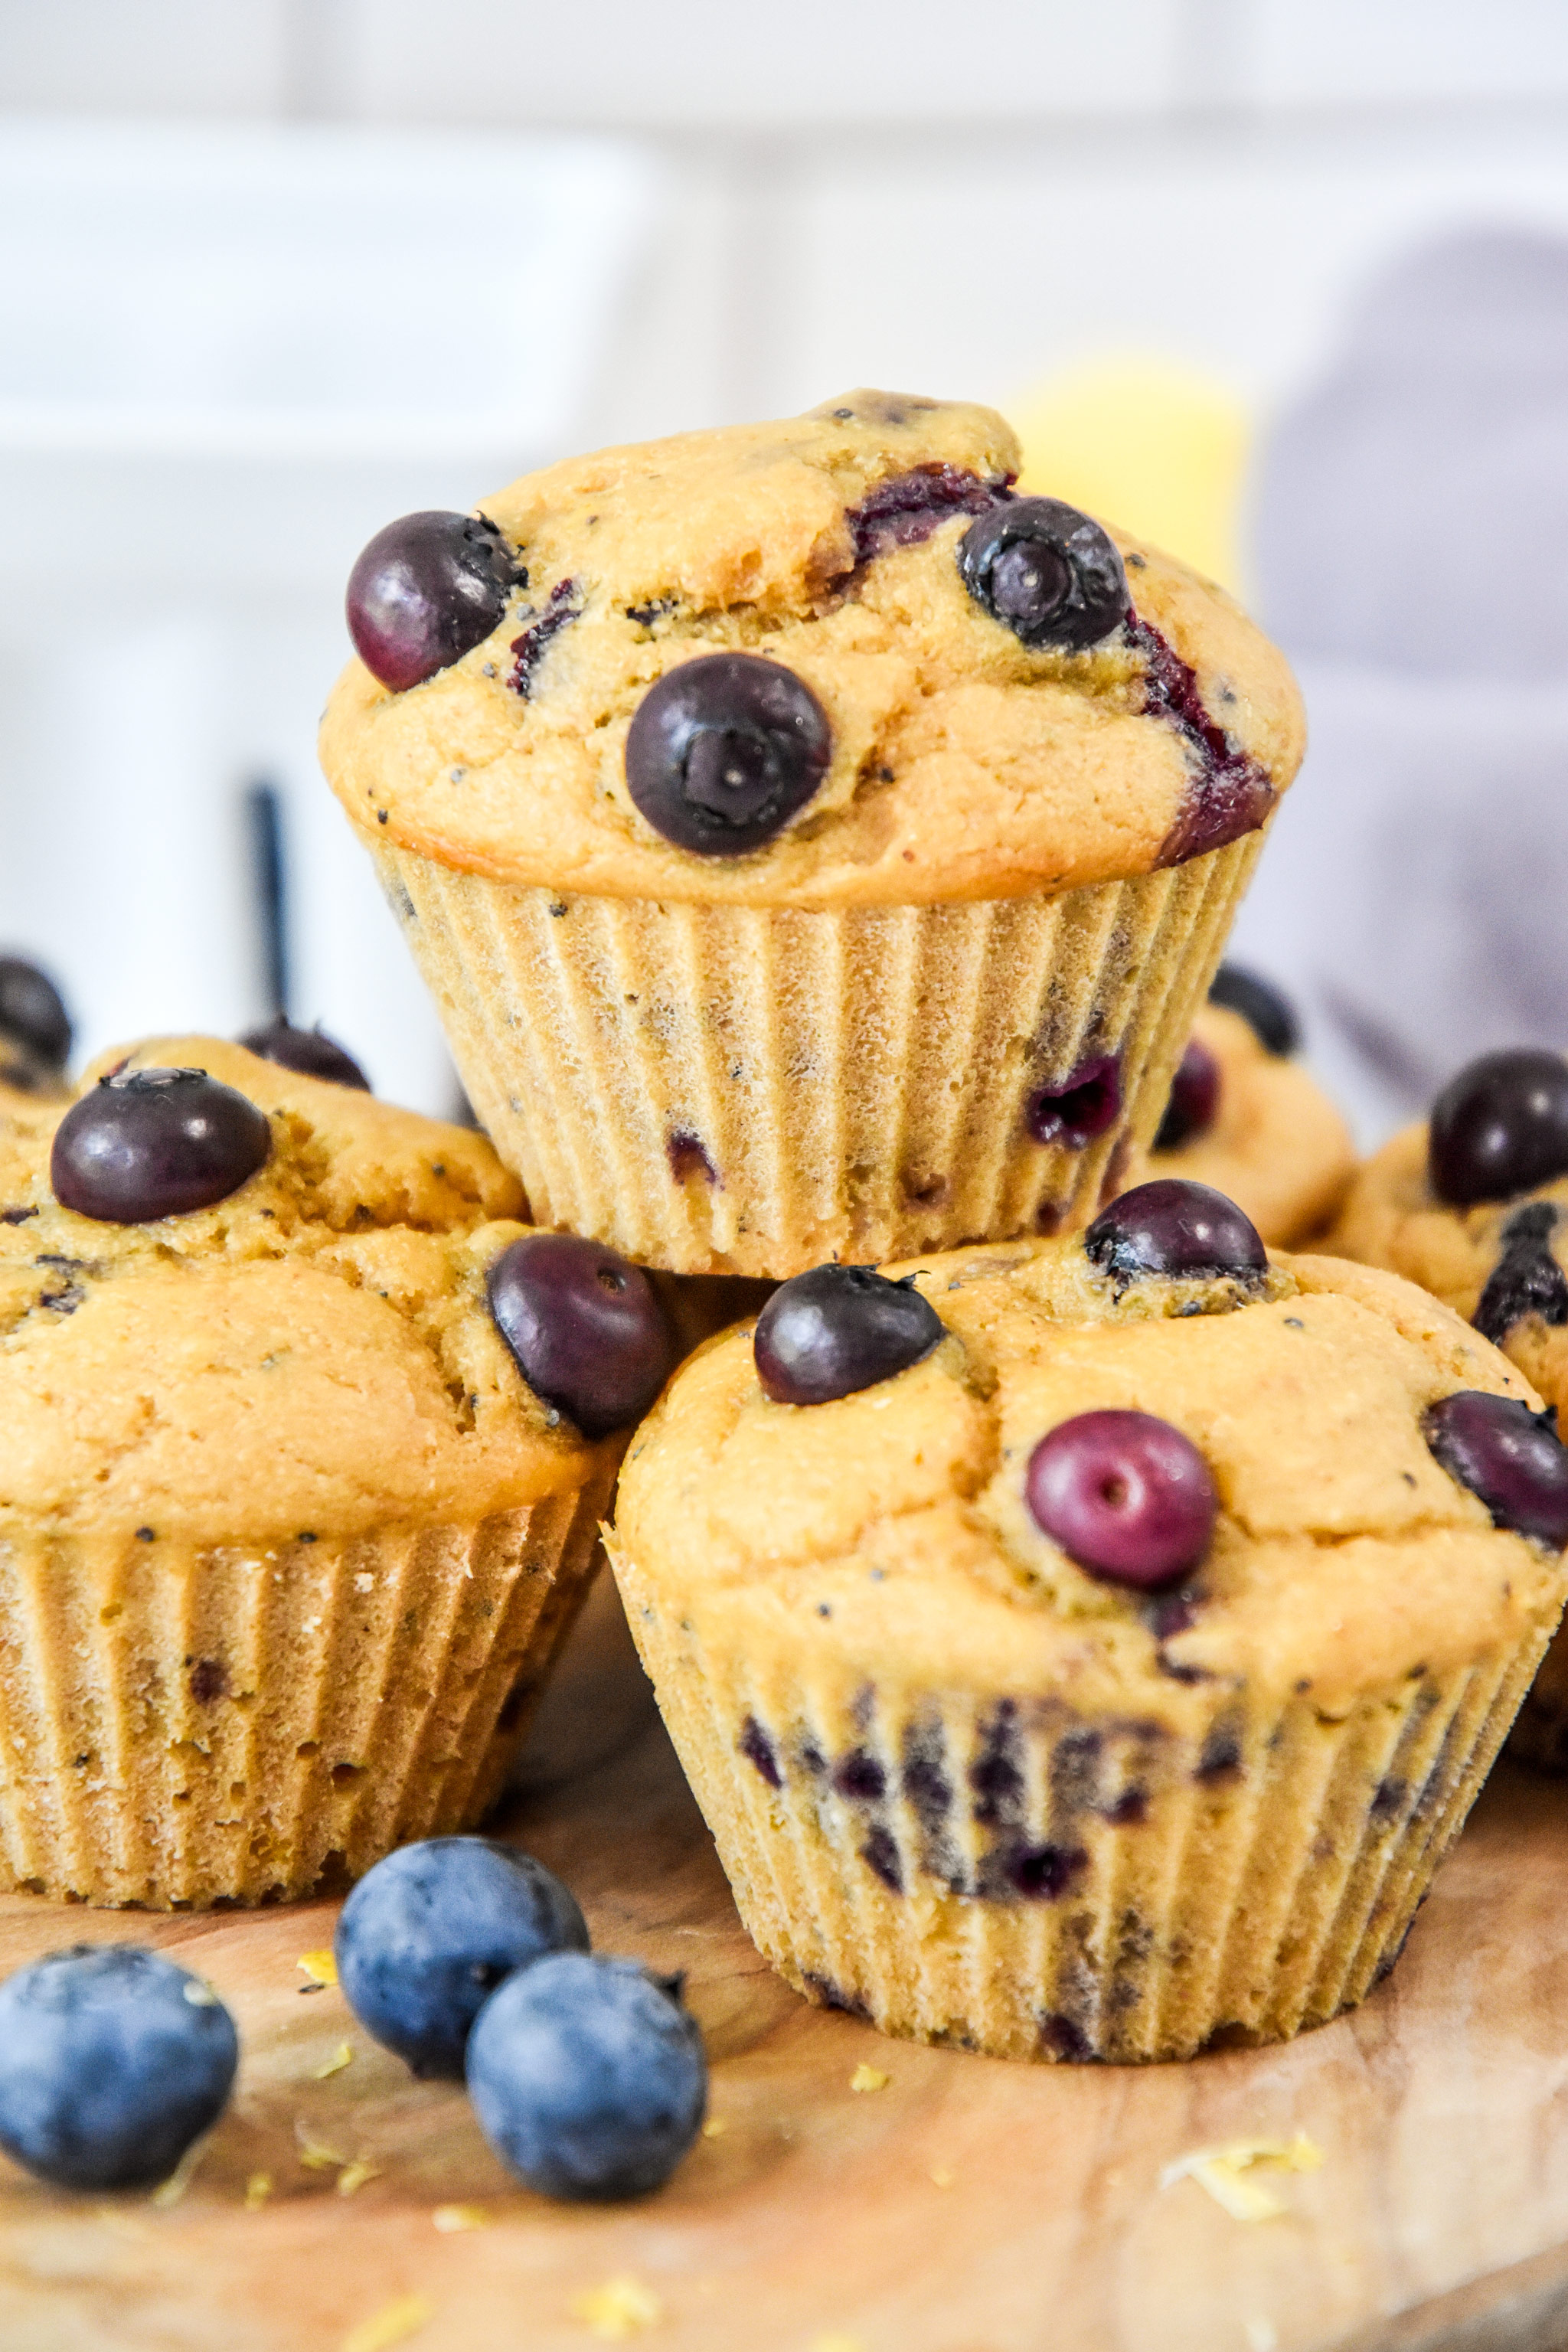 muffins stacked on a cutting board with blueberries.